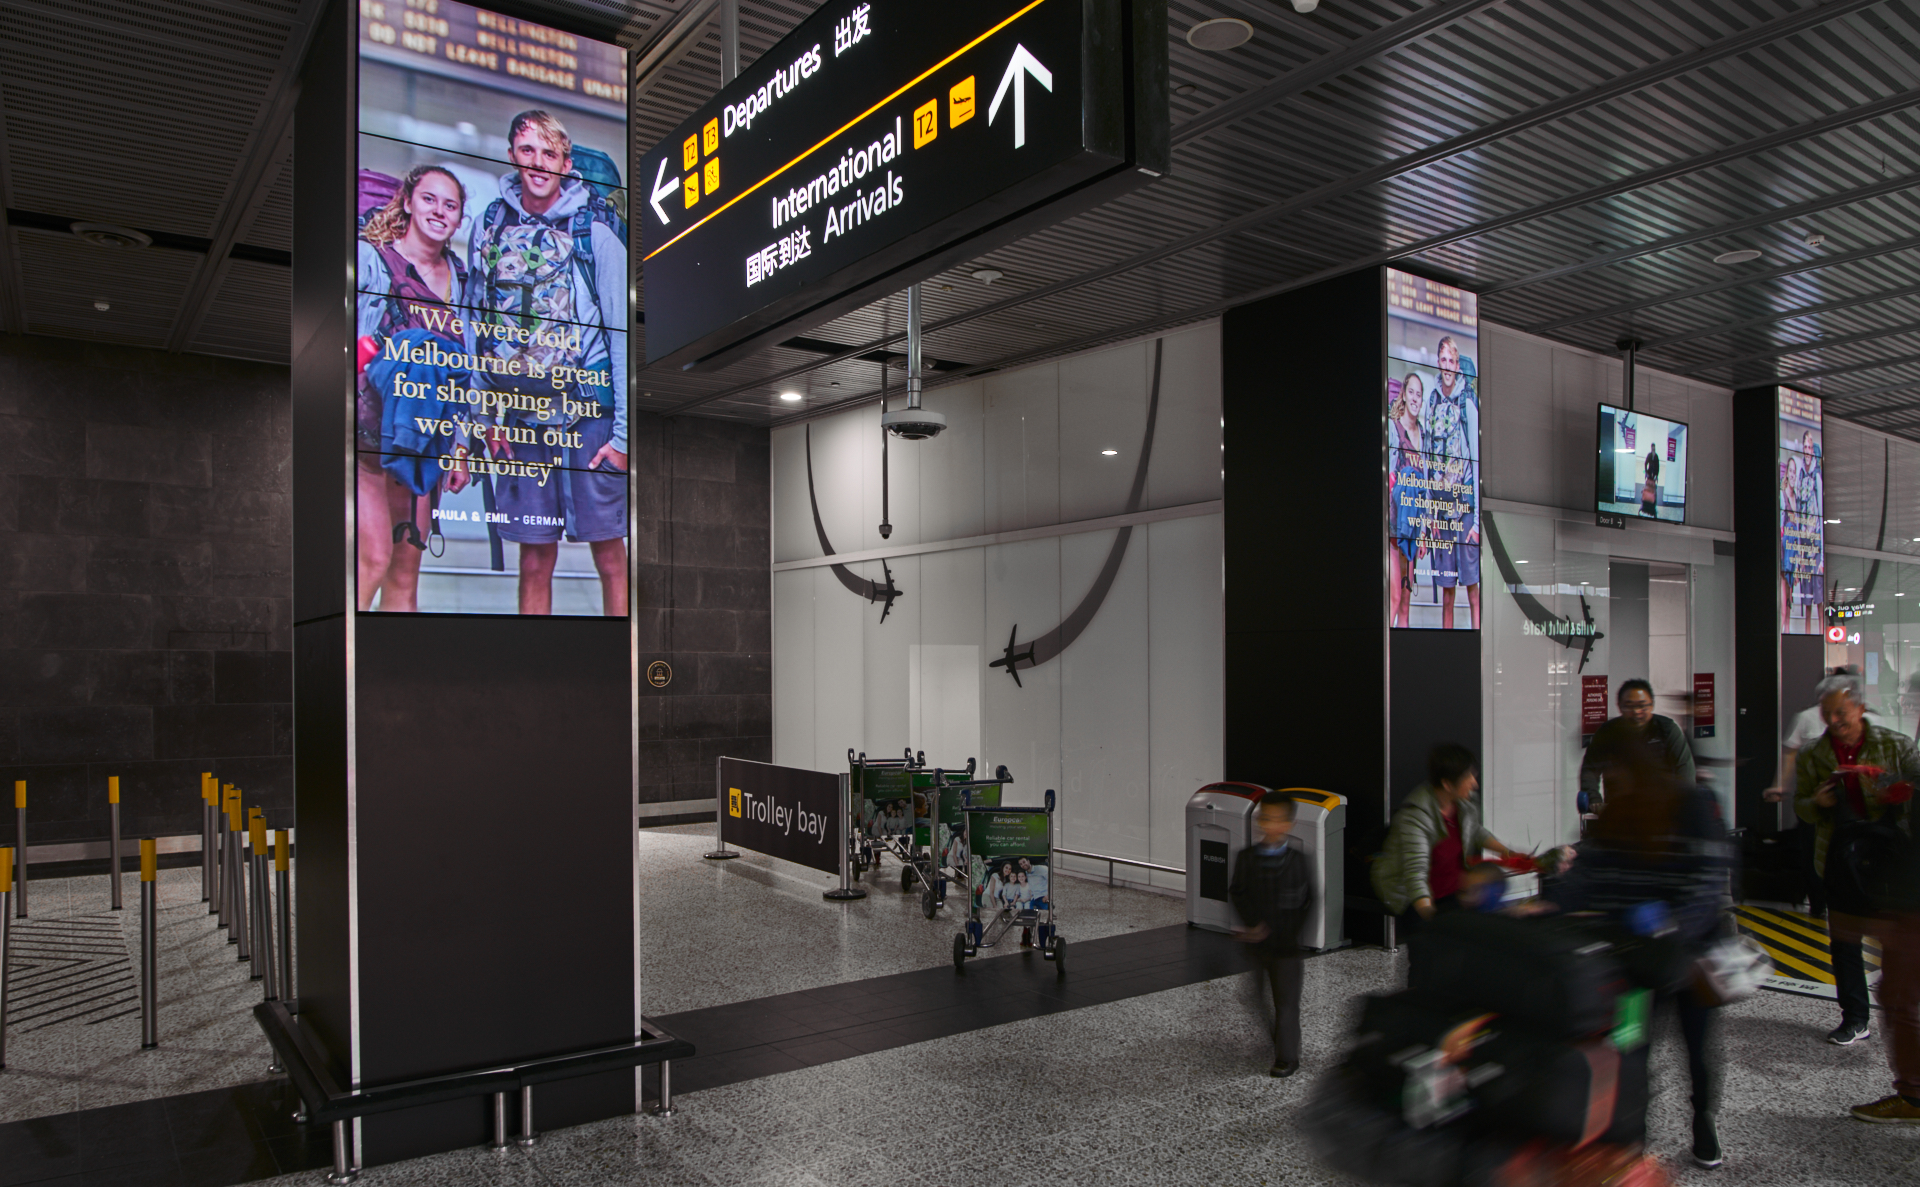 Arrival is on display at Melbourne Airport's Arrival Hall until June 30th. Image:    Safari